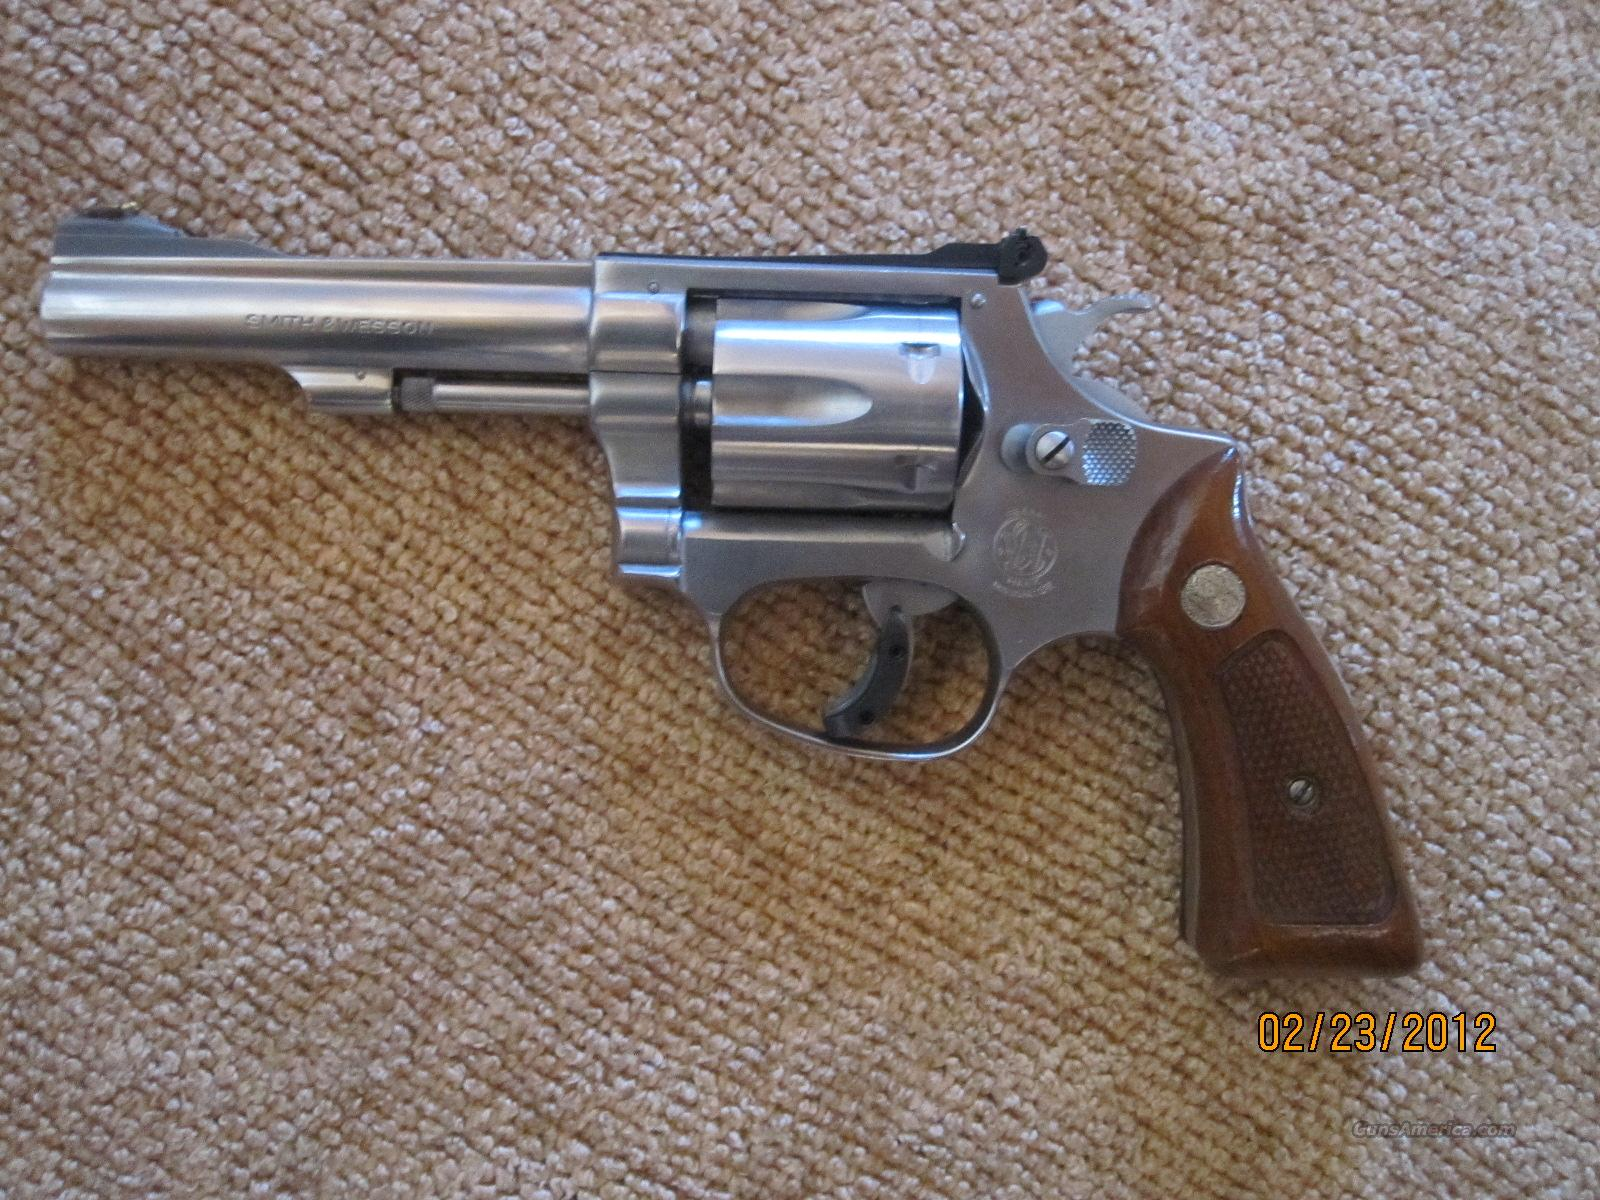 Smith And Wesson Model 63 Stainless Steel 22 Caliber  6 Shot Revolver Like new   Guns > Pistols > Smith & Wesson Revolvers > Full Frame Revolver